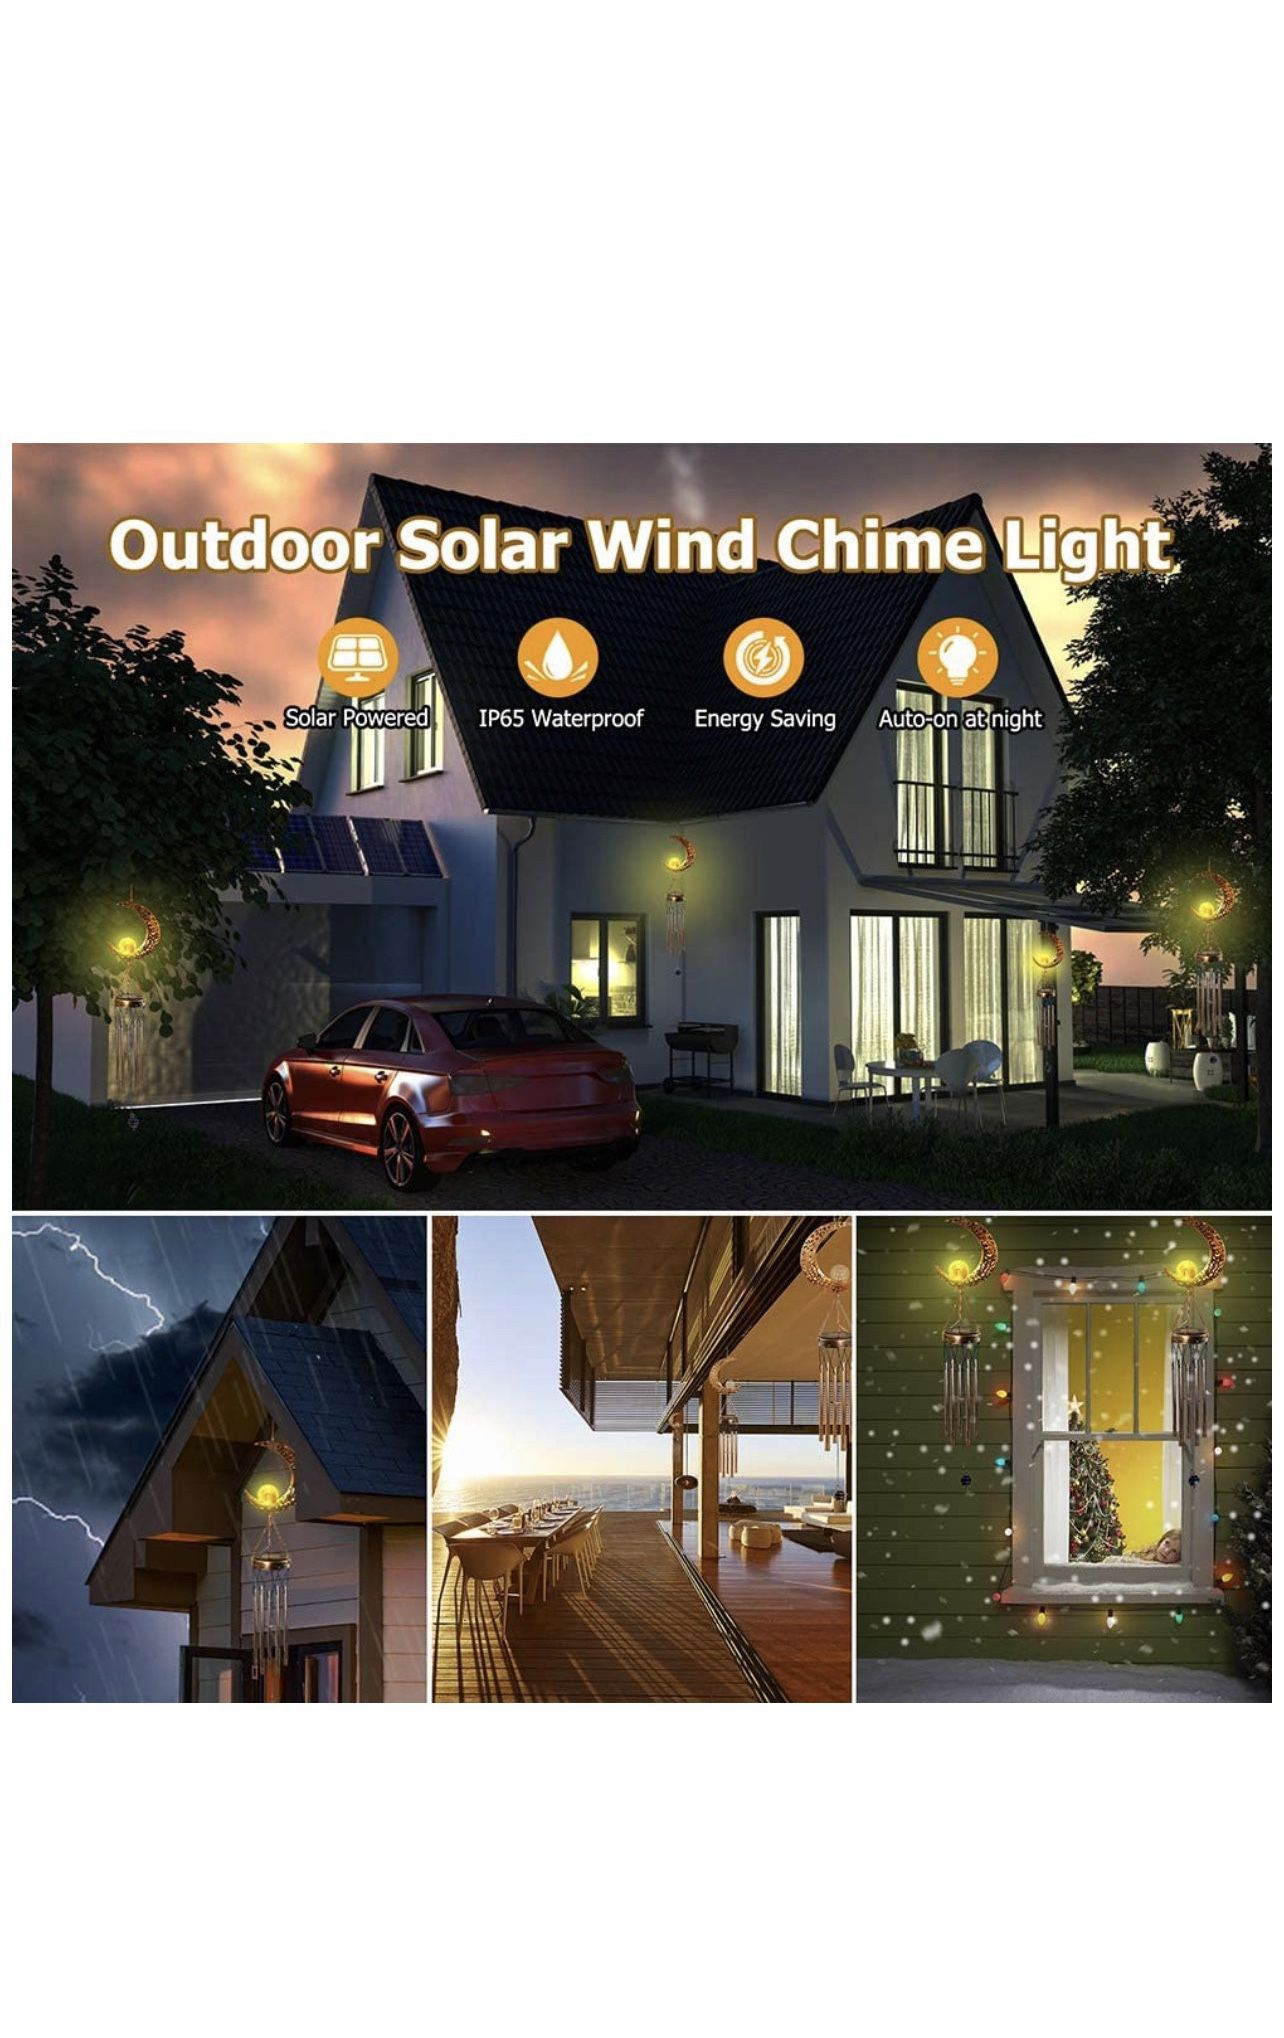 Solar Wind Chimes for Outside, Memorial Wind Chimes with Moon Crackle Glass Ball Warm LED Light, Sympathy Wind Chimes with Metal Tubes Waterproof Uniq